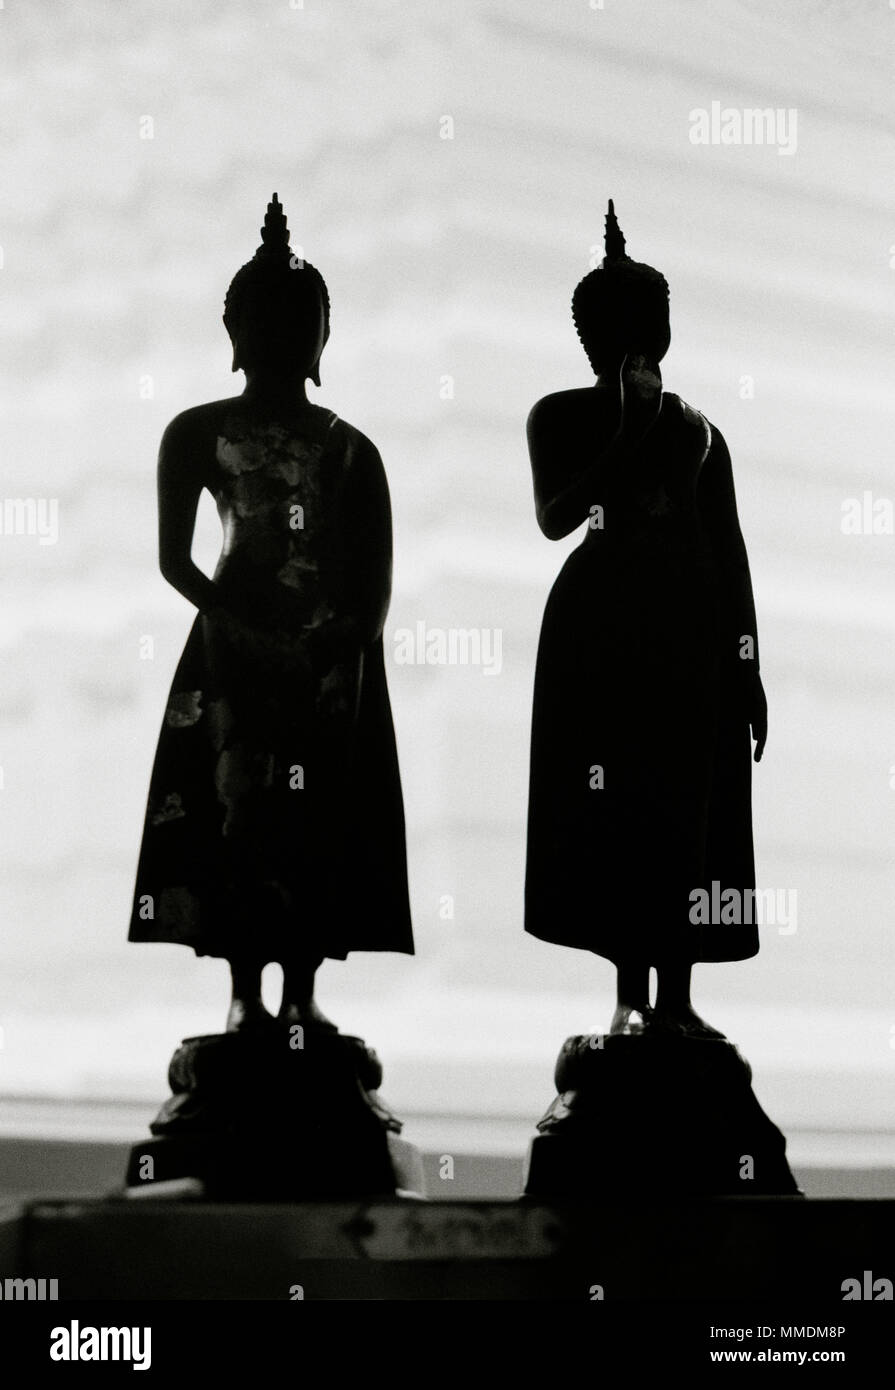 Silhouette figures at Wat Rakhang Bell Temple in Bangkok in Thailand in Southeast Asia Far East. Sculpture Carving Silhouetted Travel B&W - Stock Image